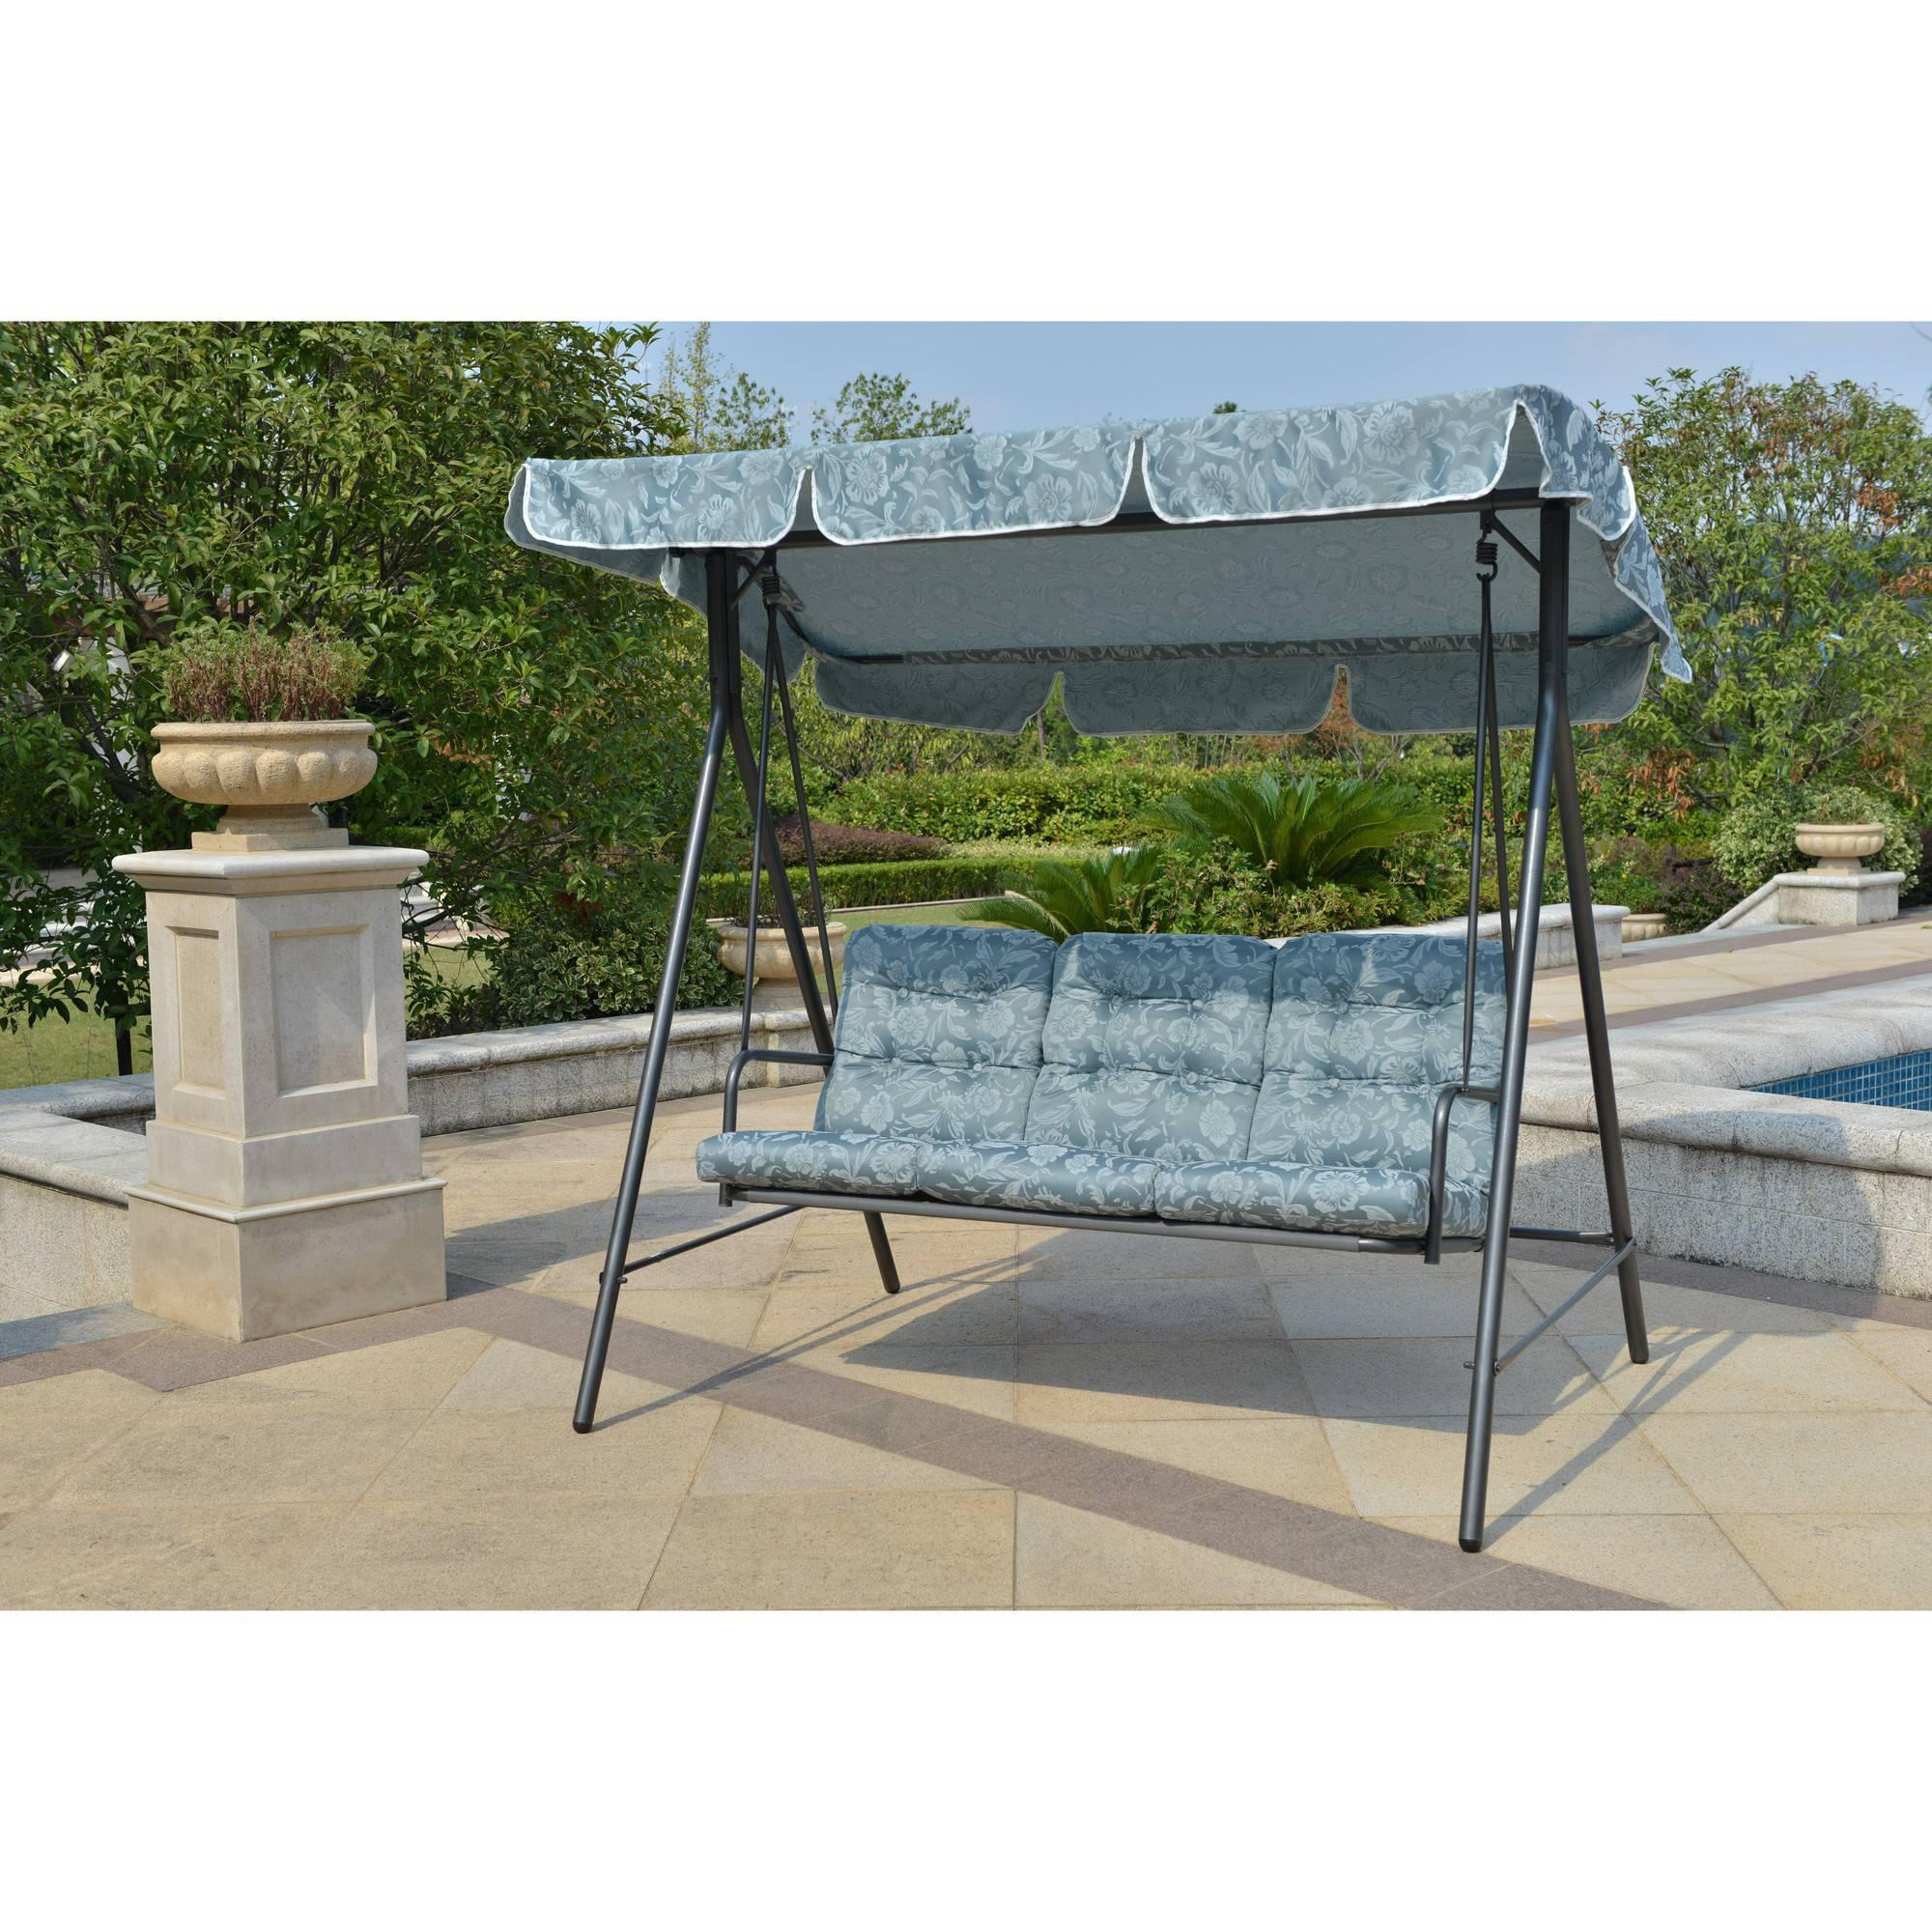 Mainstays Willow Springs Outdoor Swing Blue Seats 3 Ebay